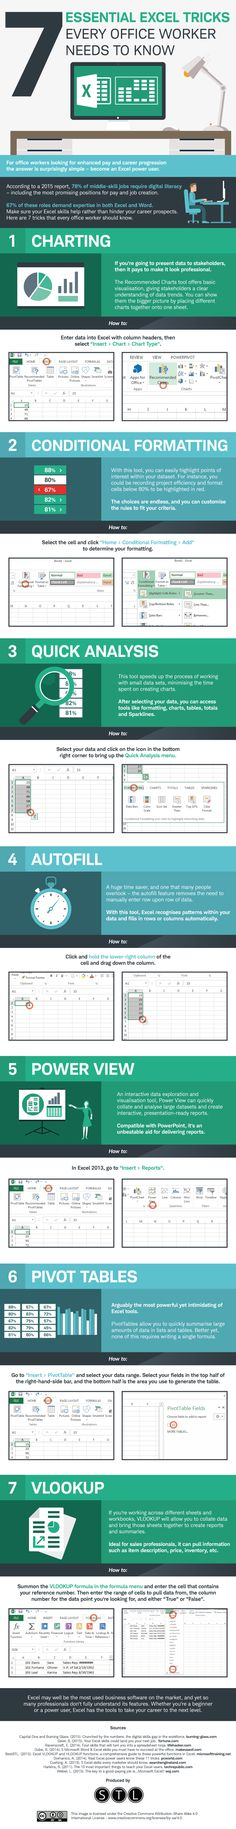 7-essential-Excel-tricks-every-office-worker-needs-to-know v2